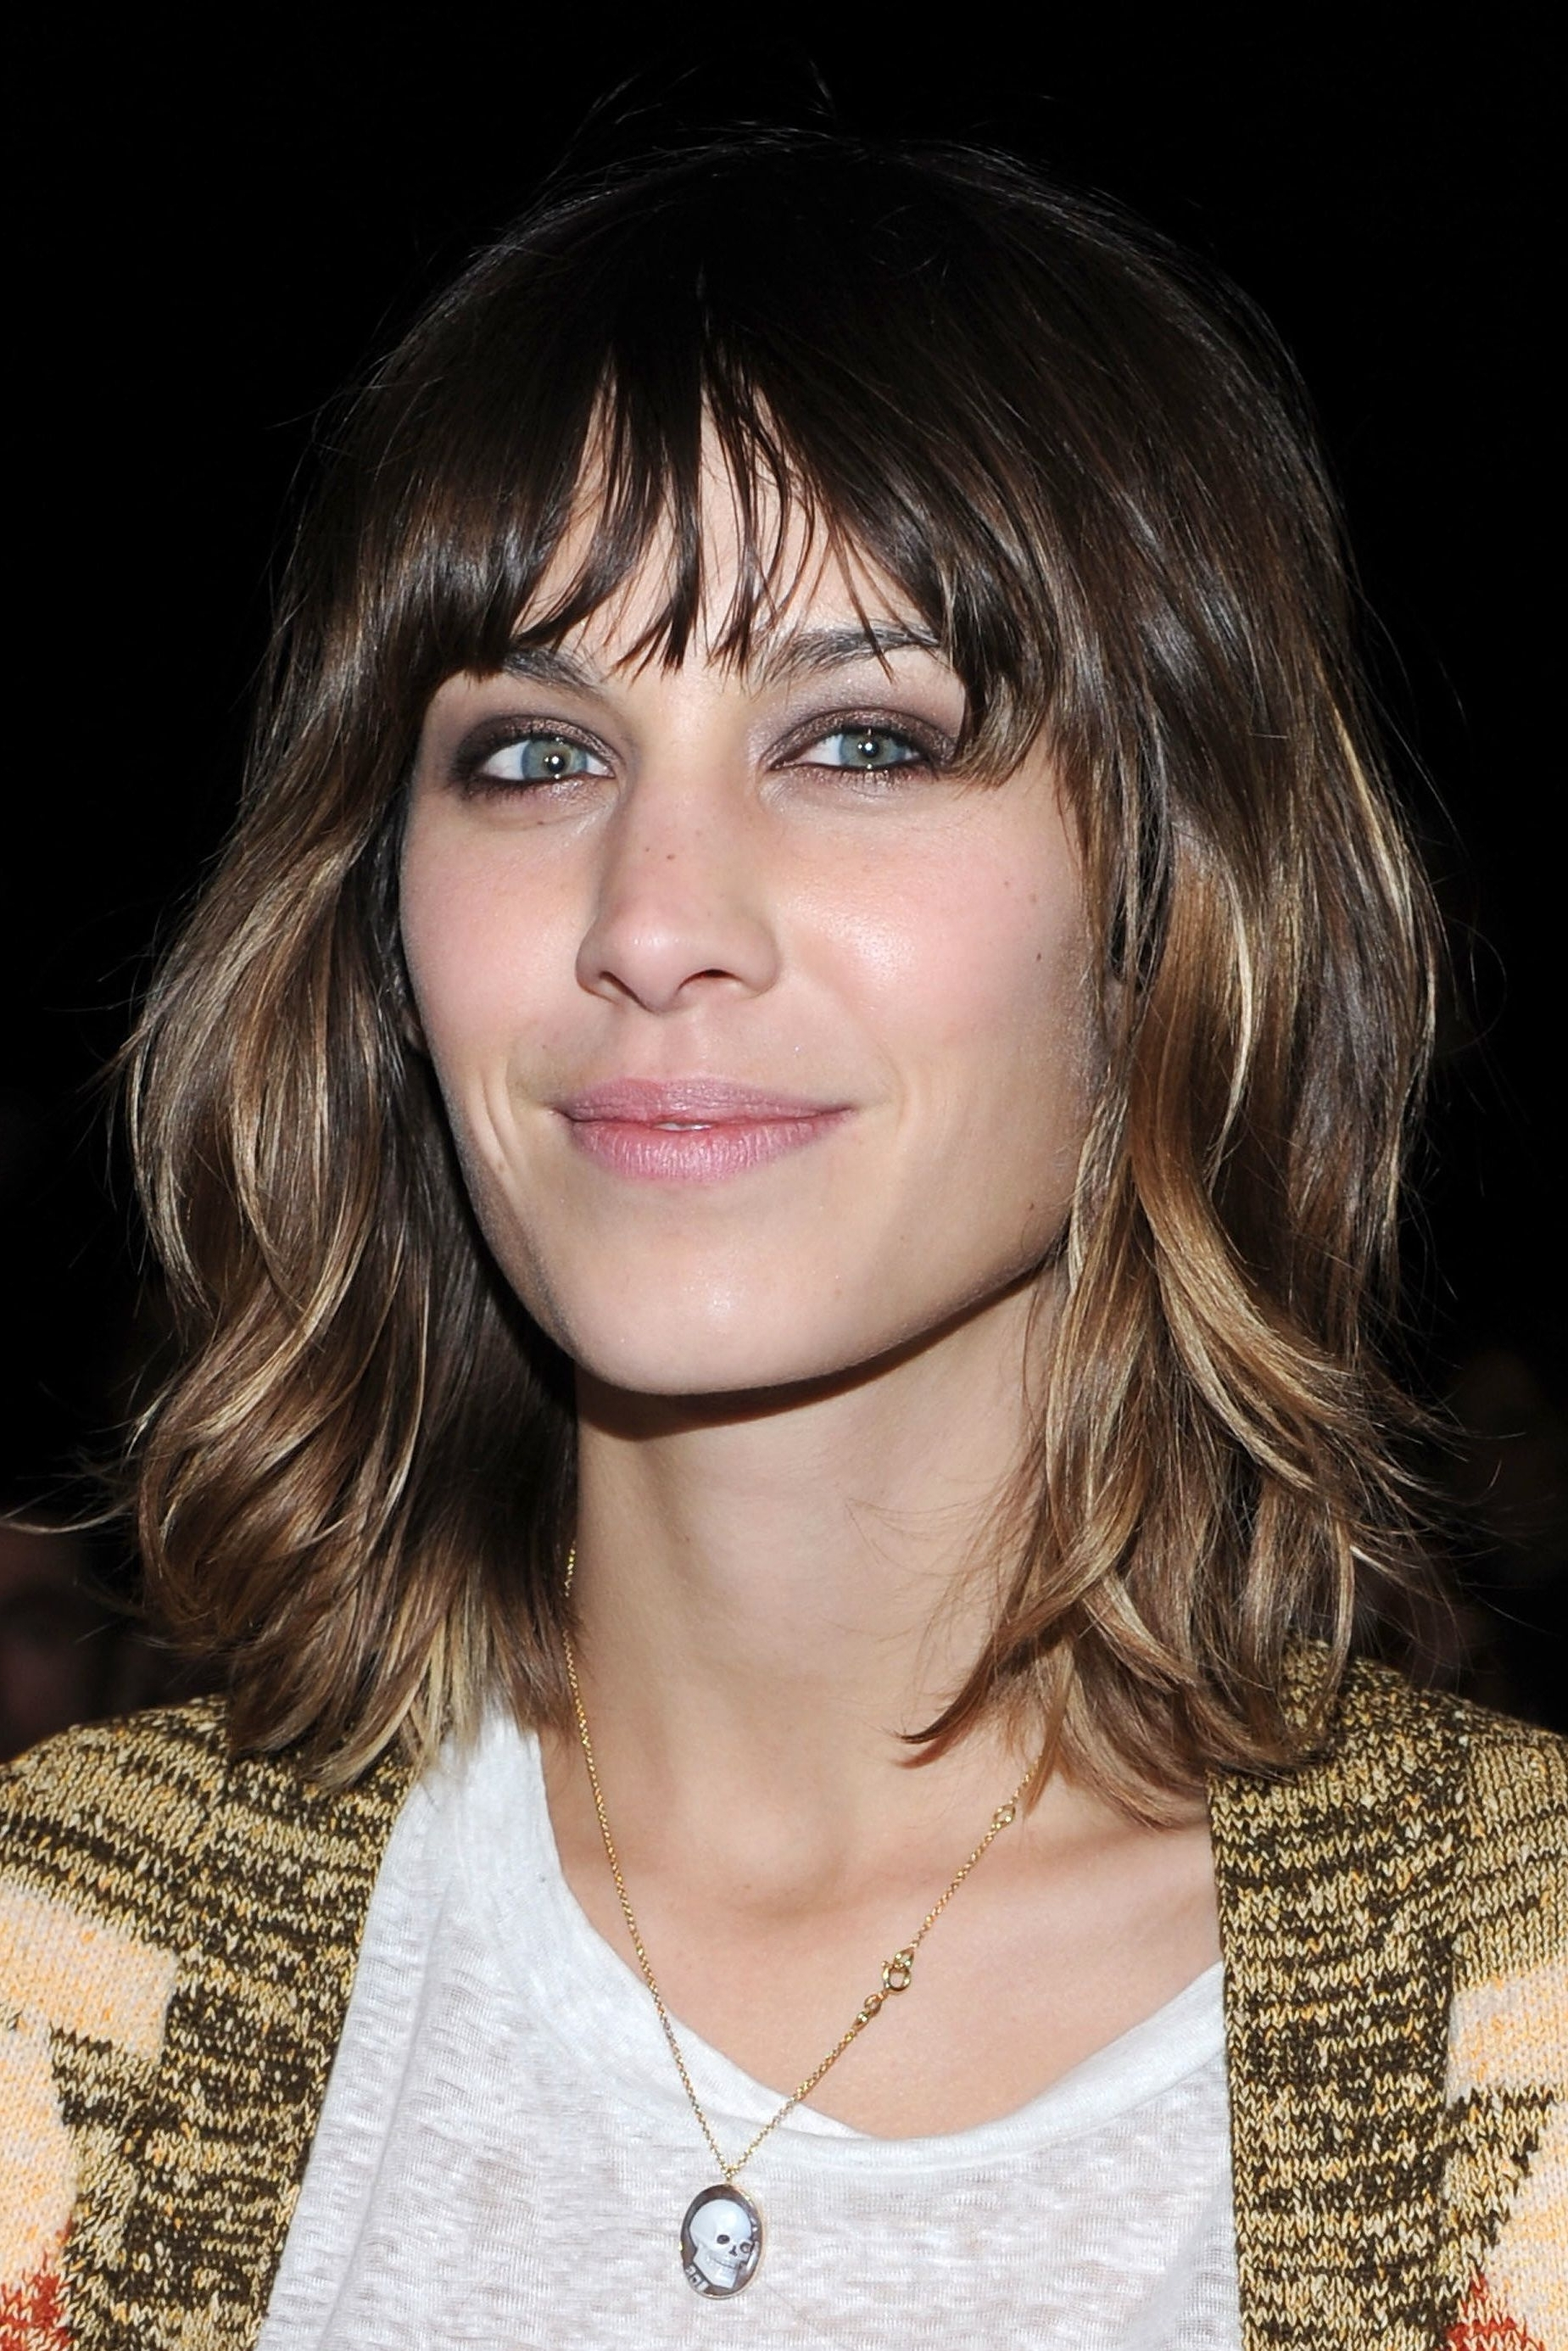 Well Known Medium Shaggy Hairstyles With Bangs In From Short To Long: 24 Fabulous Shag Haircuts (View 13 of 15)